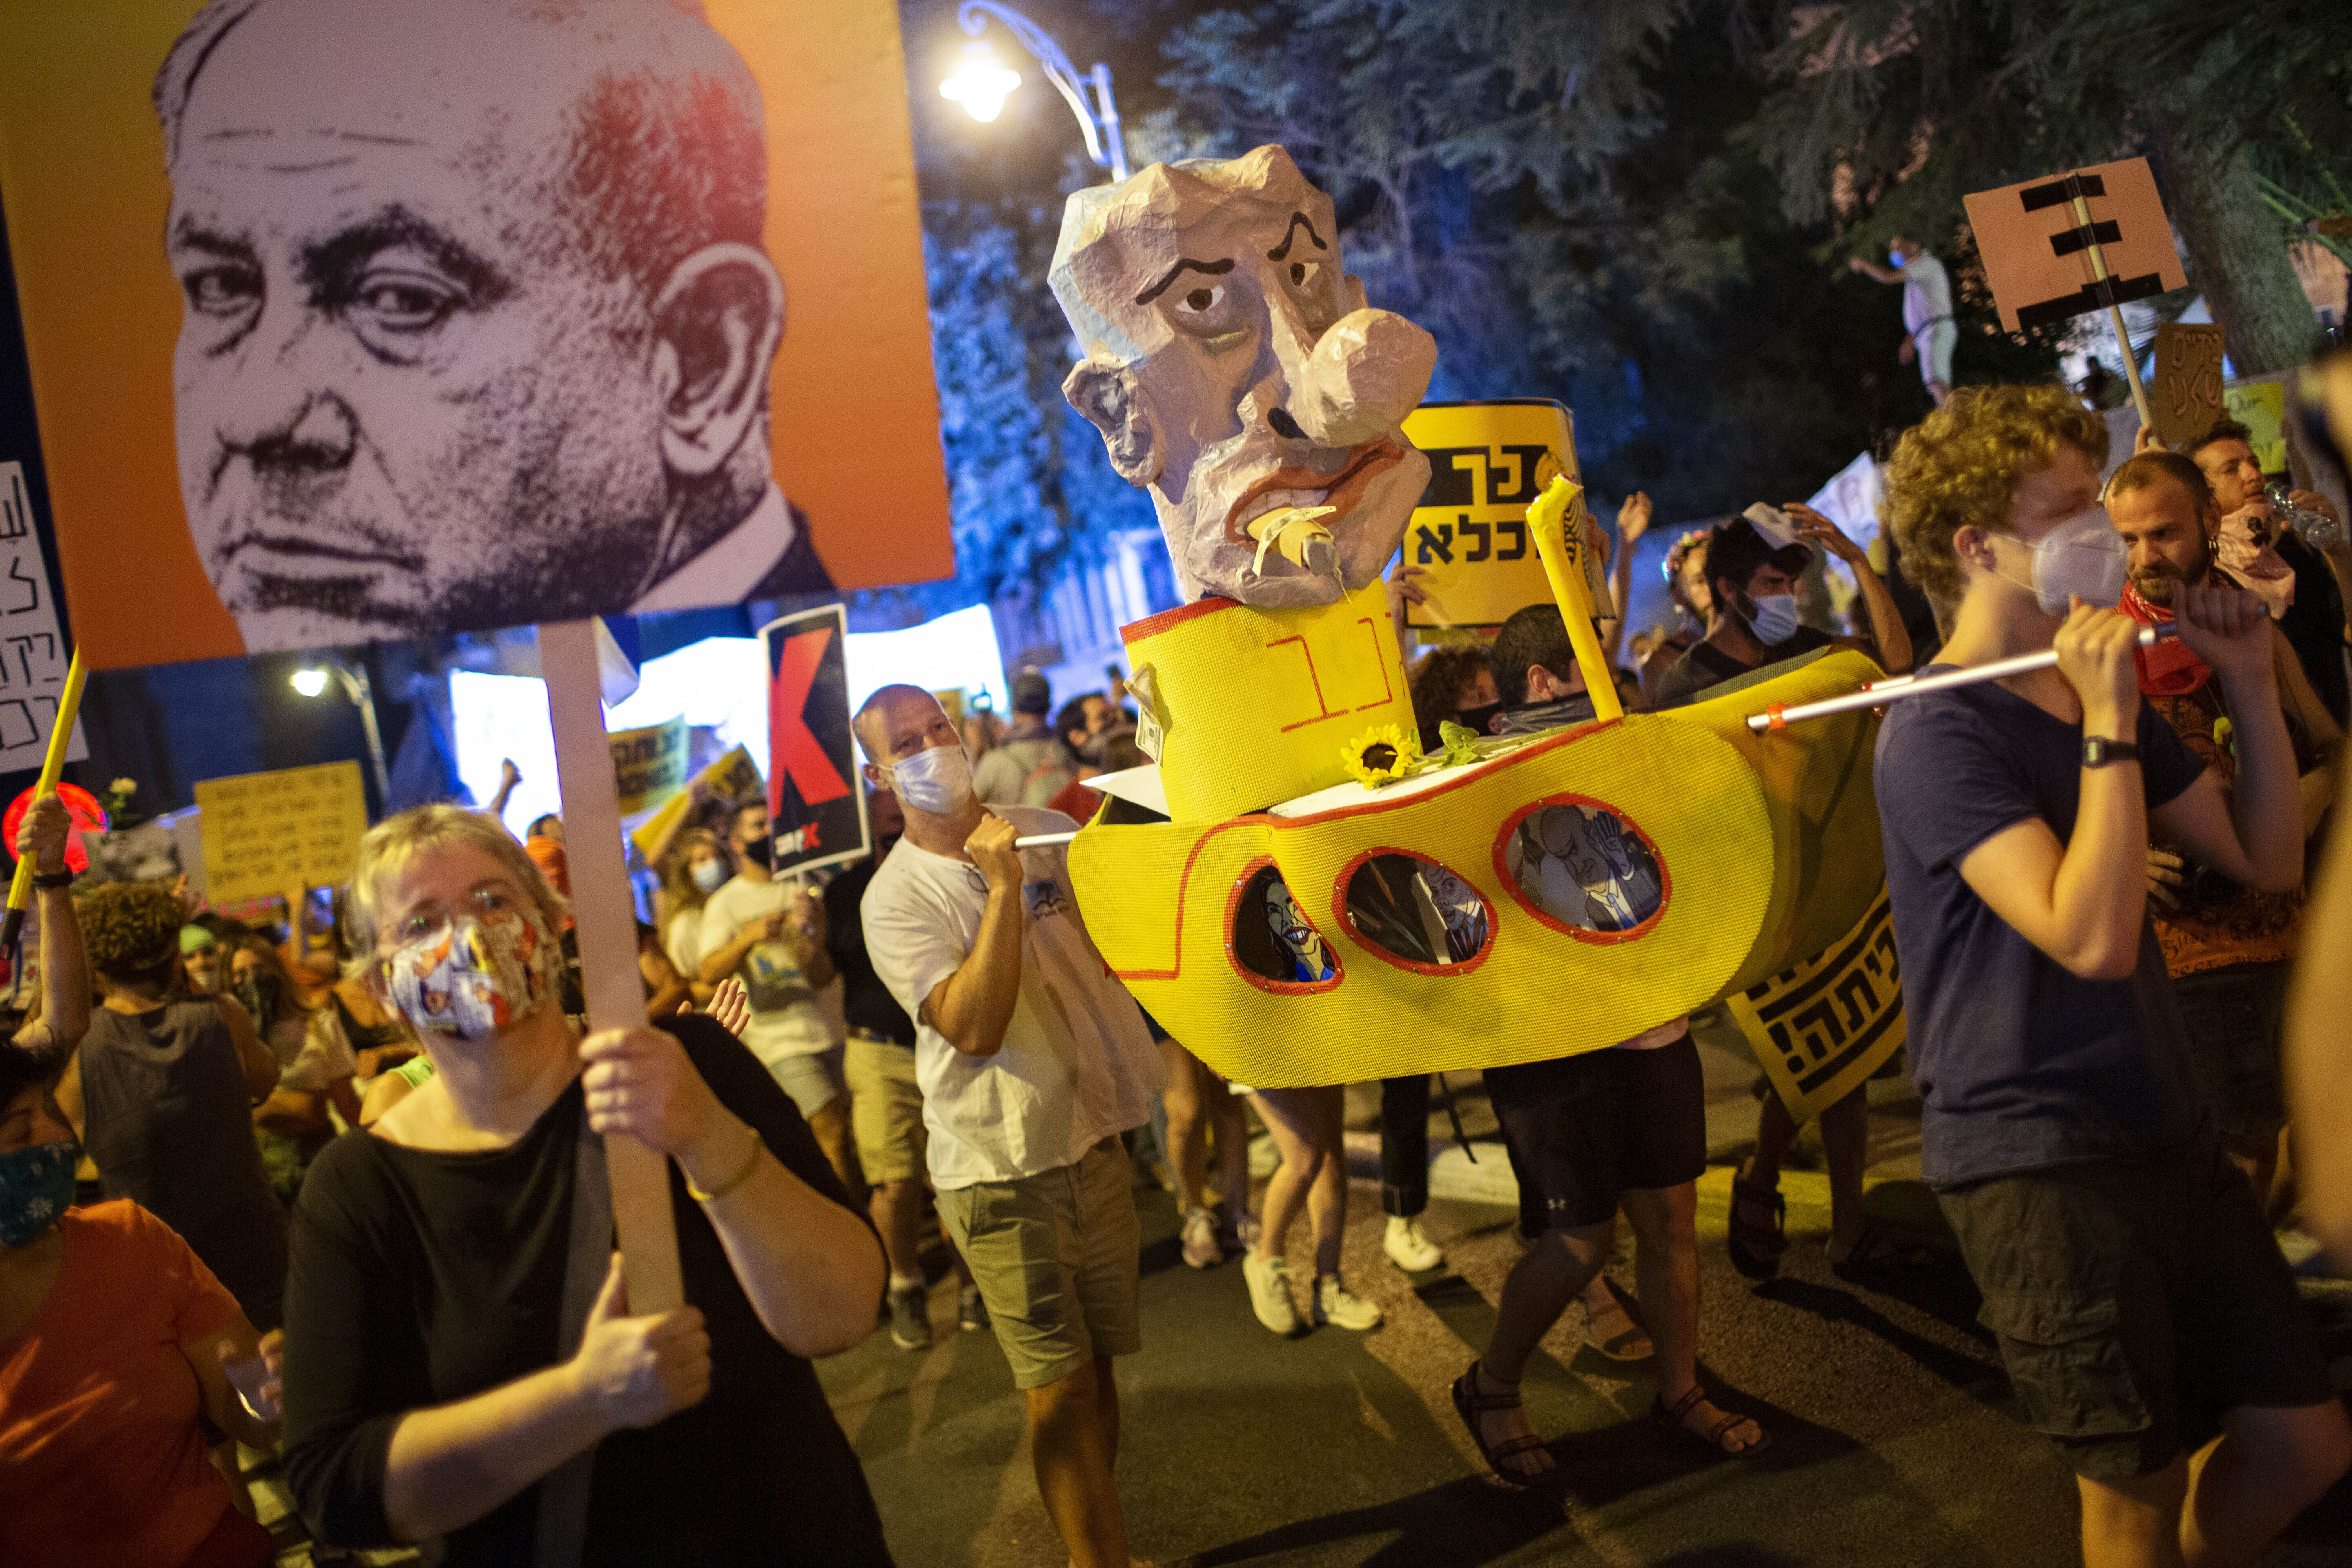 Demonstrators chant slogans and hold signs during a rally against Israel's Prime Minister Benjamin Netanyahu outside his residence in Jerusalem, Aug 1, 2020.